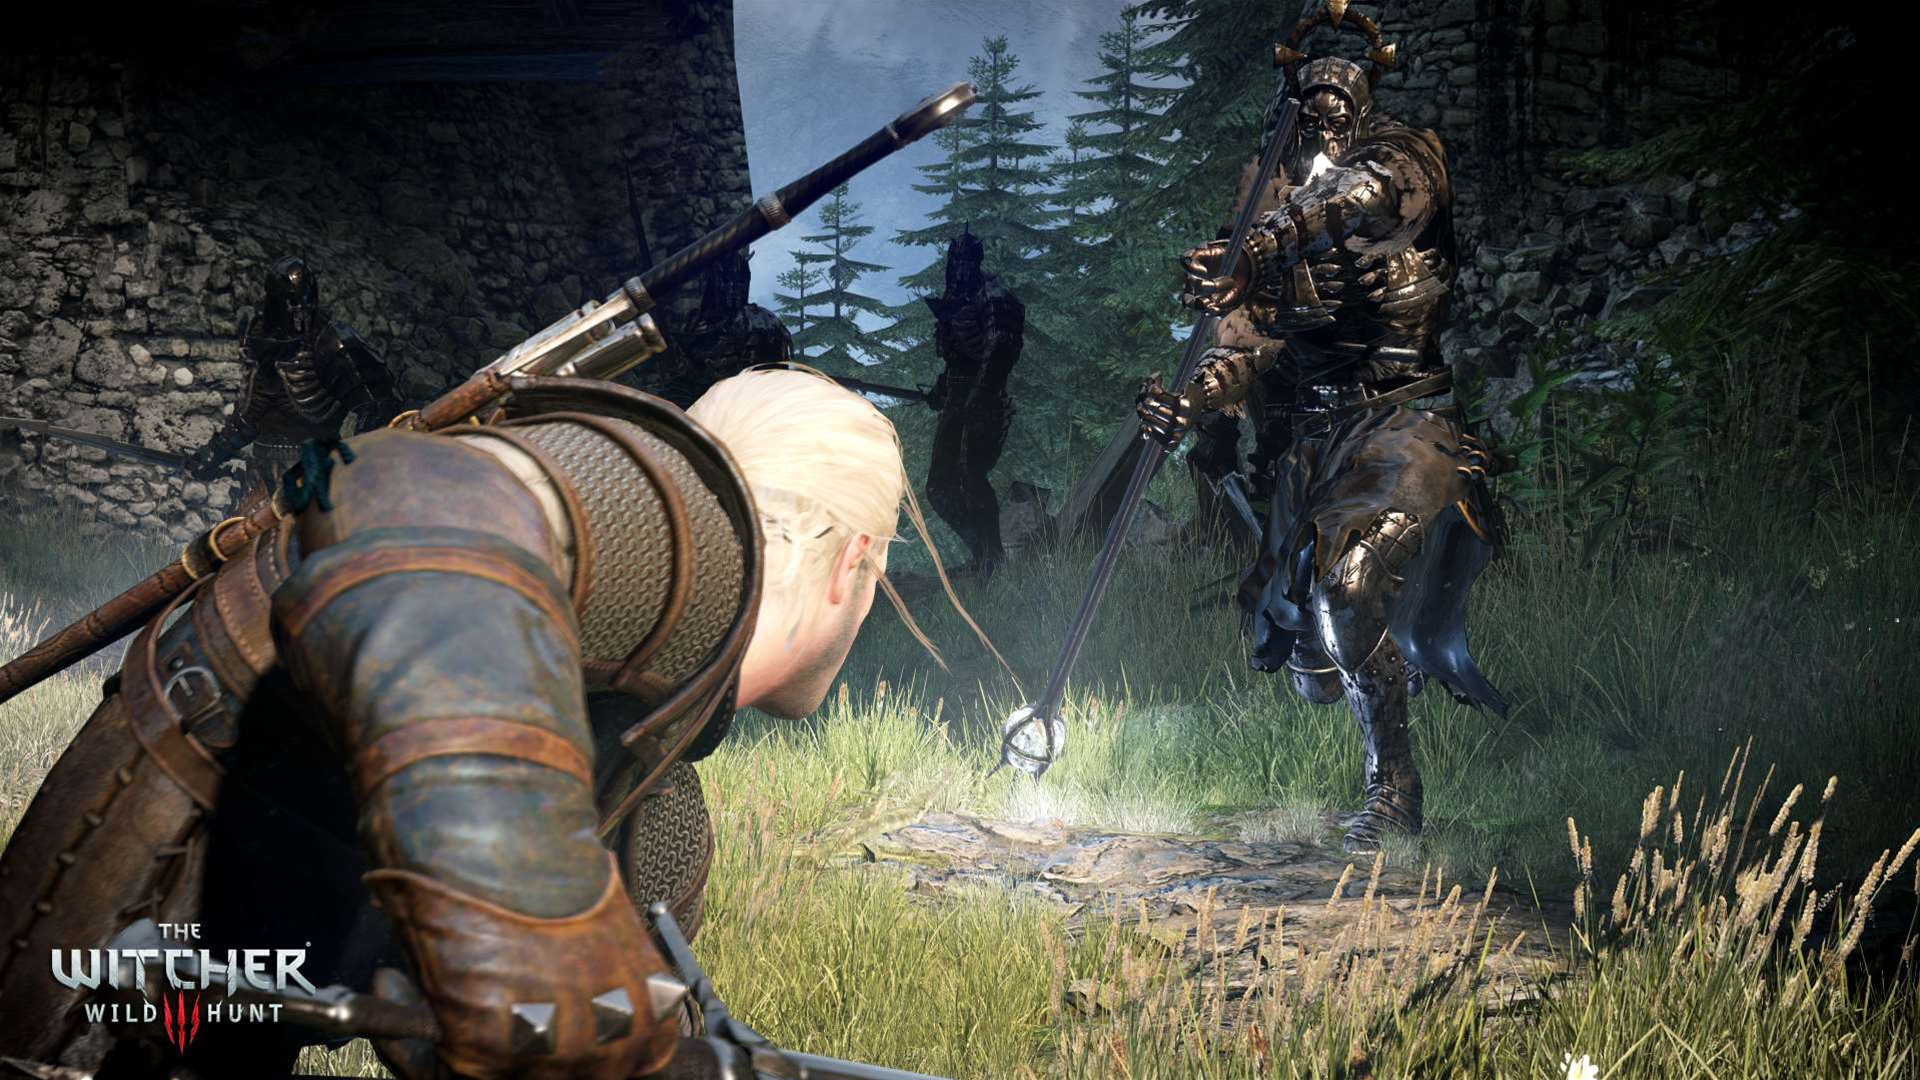 22 new screens from The Witcher 3: Wild Hunt